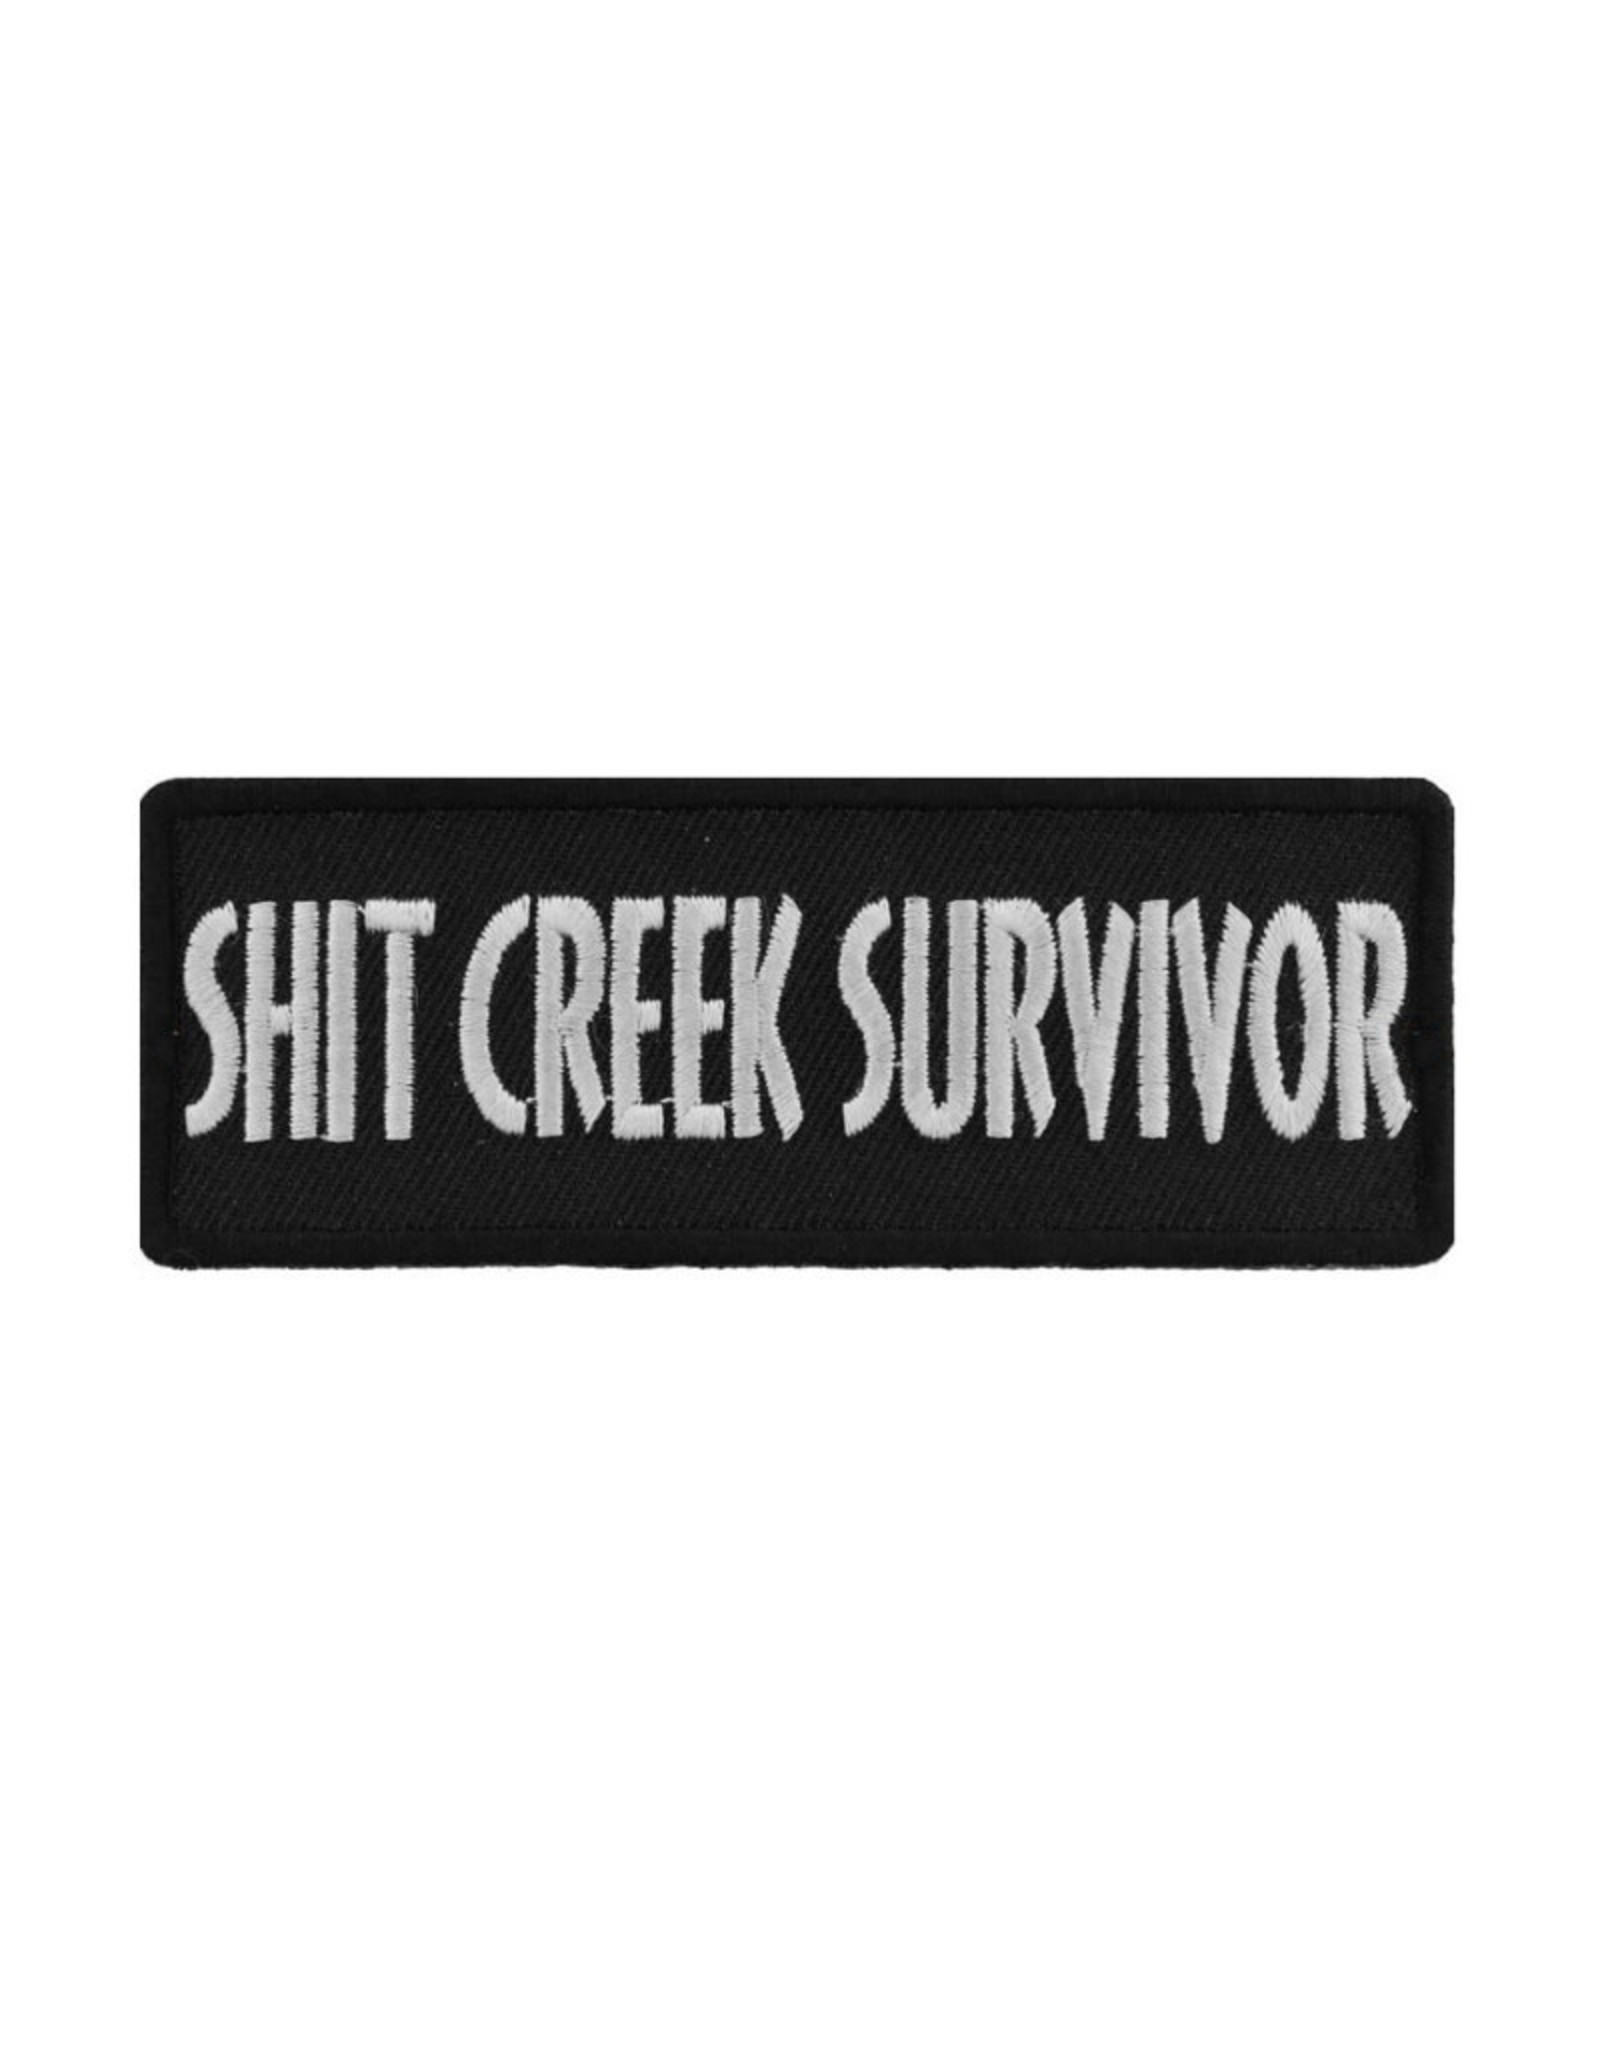 "MidMil Embroidered Patch ""Shit Creek Survivor"" 4"" wide x 1.5"" high Black"